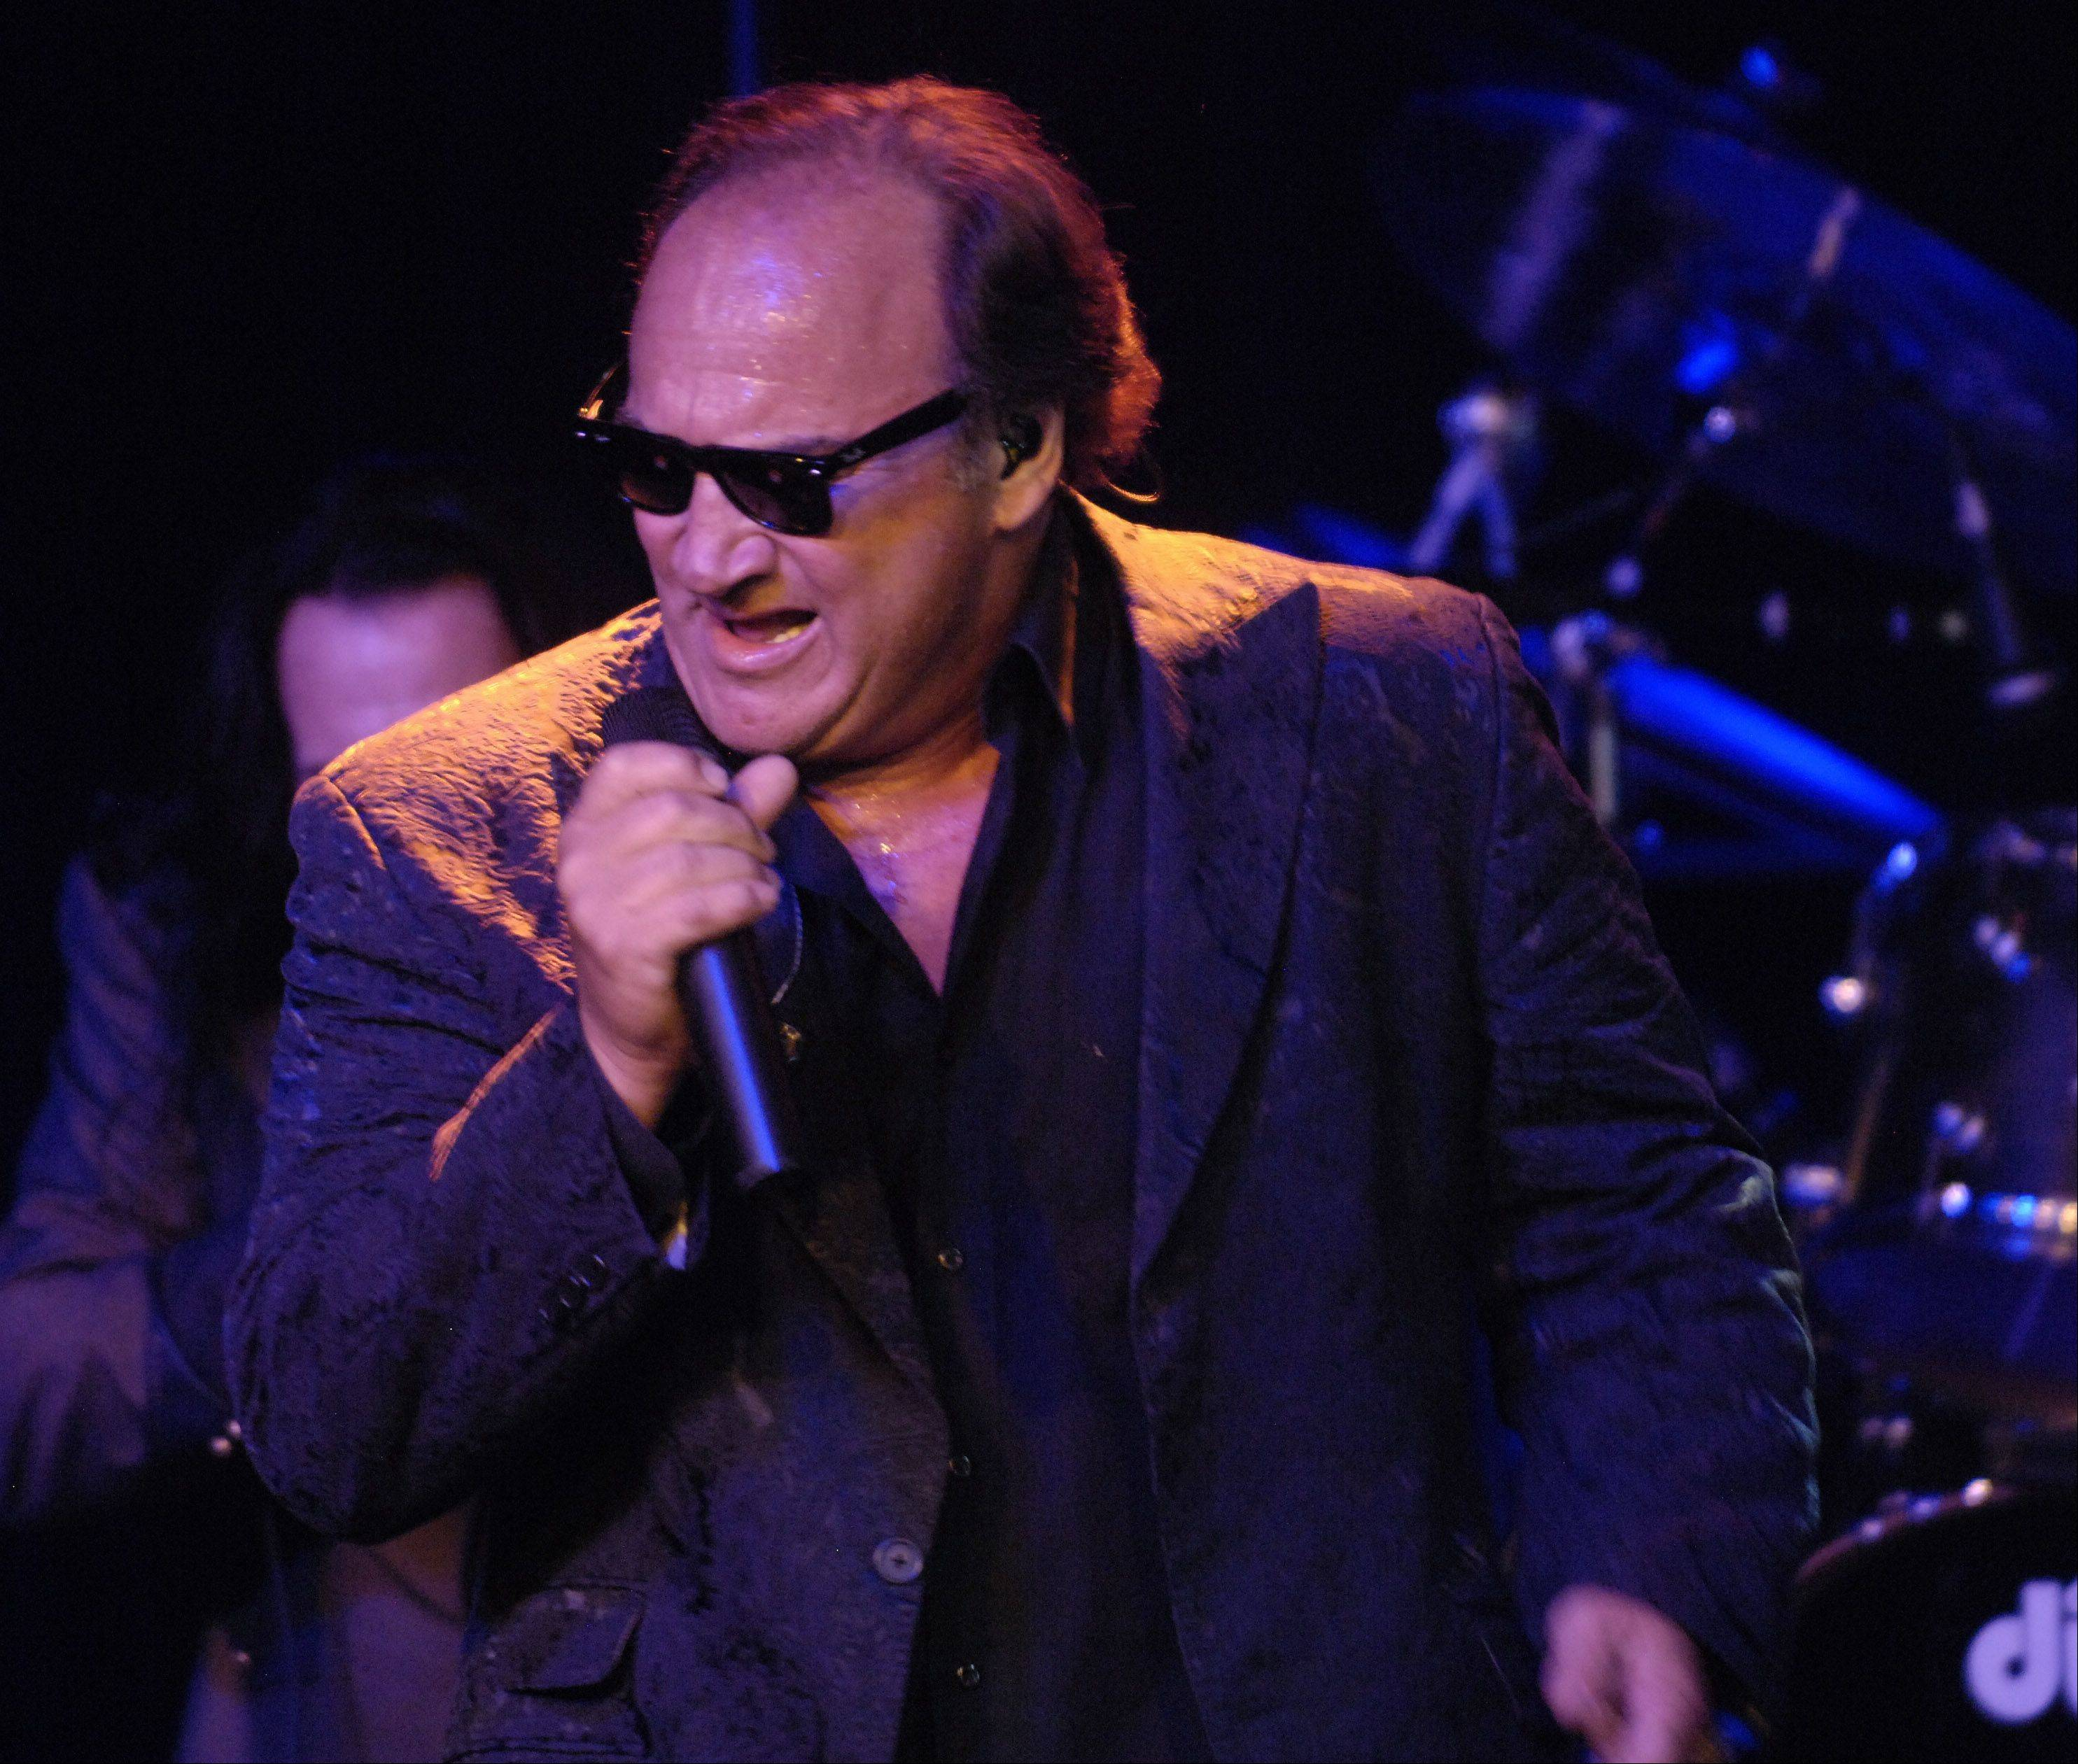 Jim Belushi and the Sacred Hearts performed at the Rivers Casino in Des Plaines Wednesday to mark the casino's anniversary.